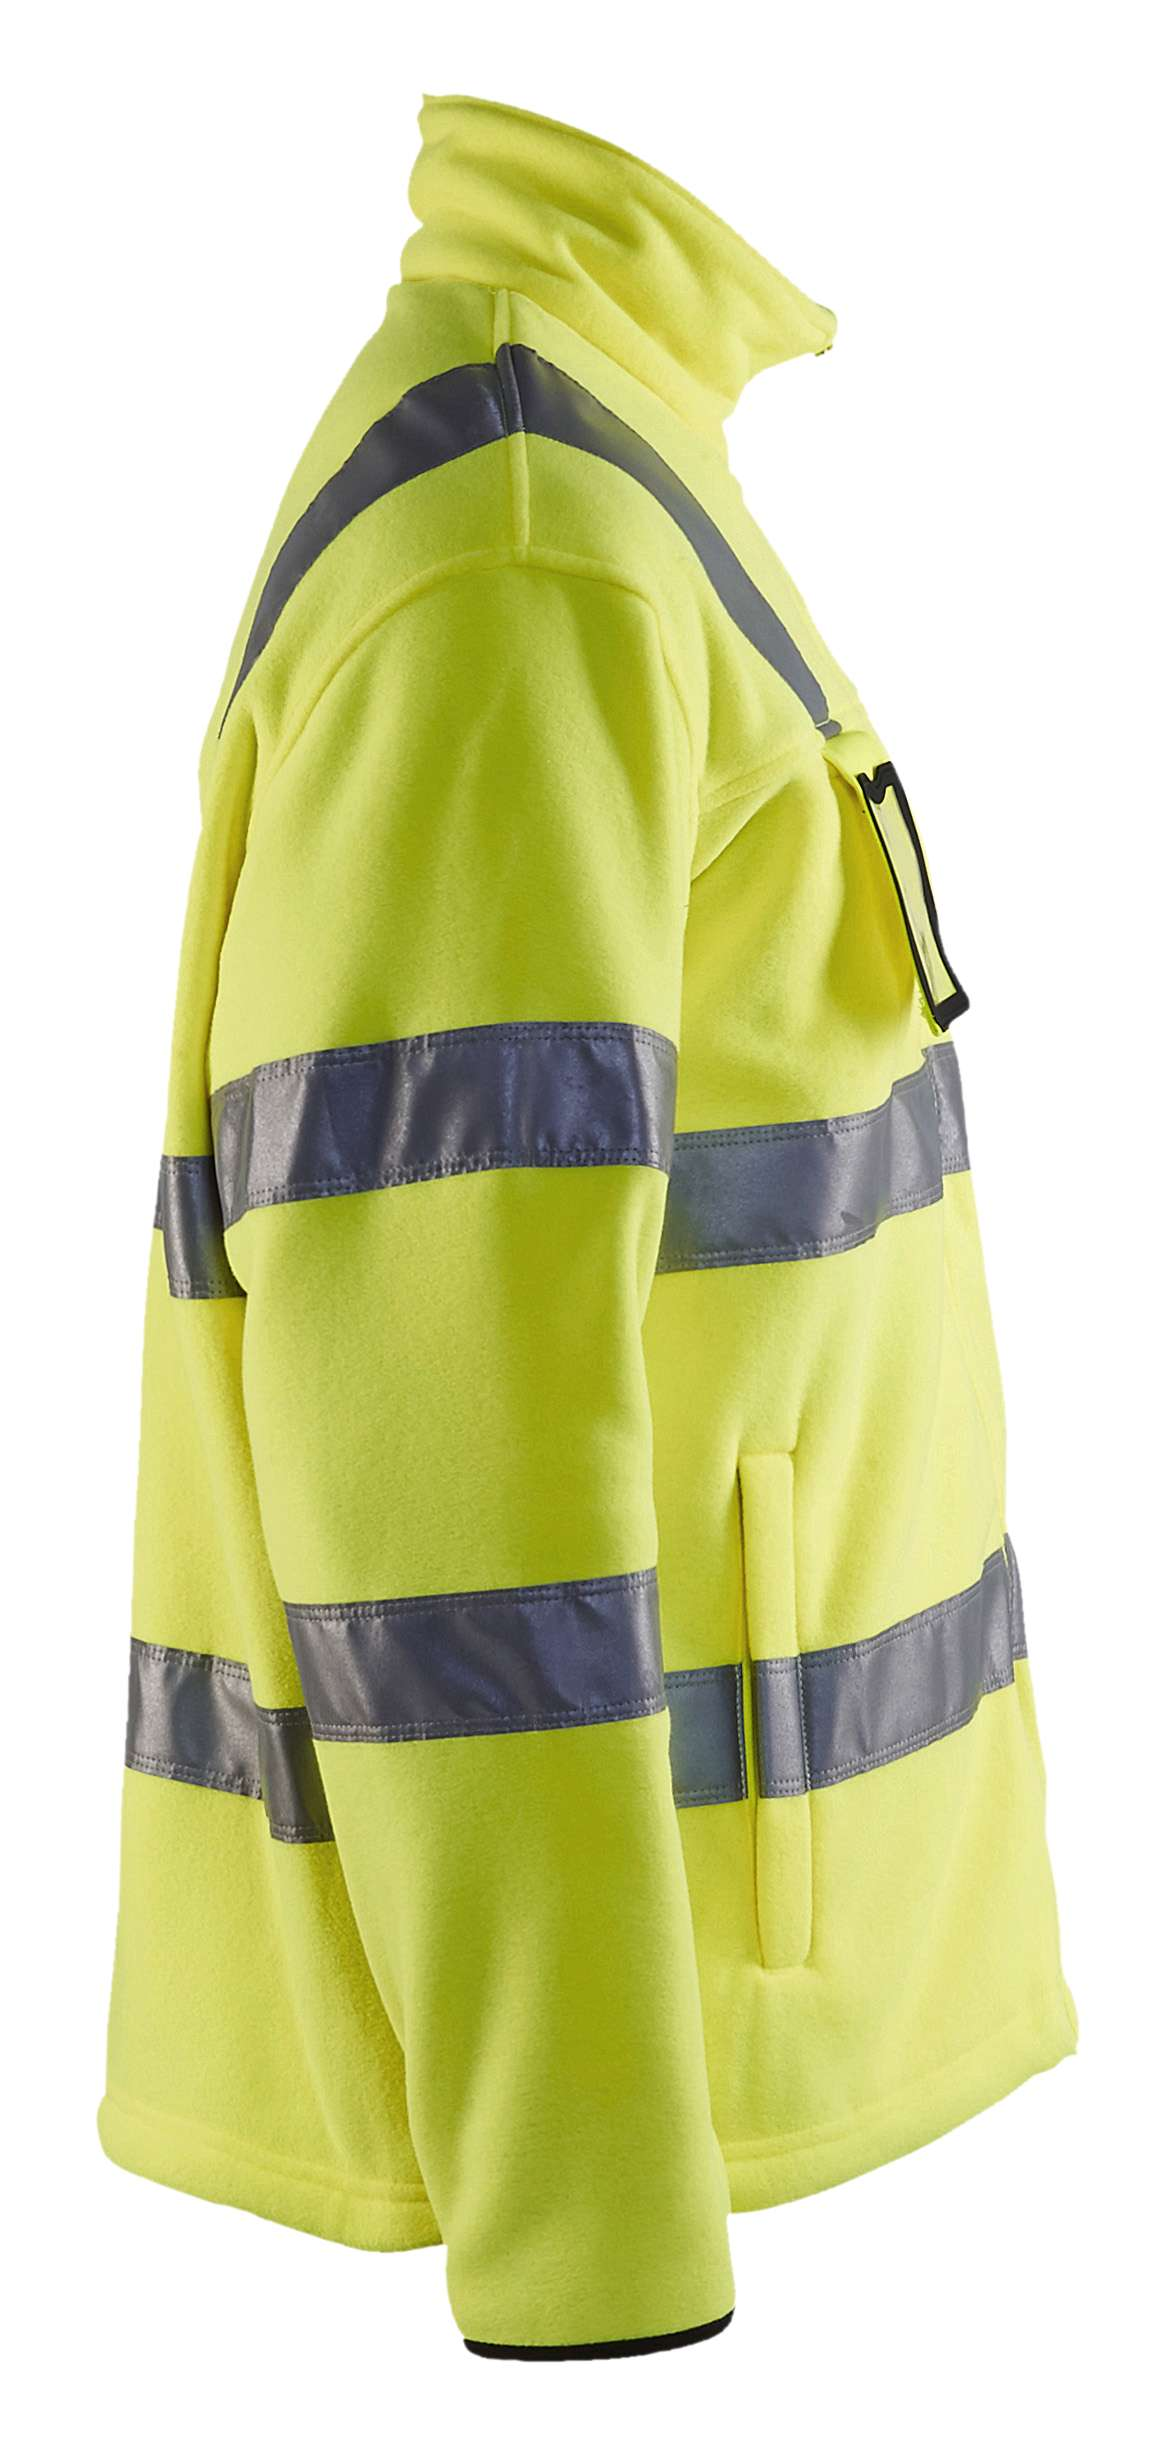 Blaklader Fleece vesten 48332560 High Vis geel(3300)